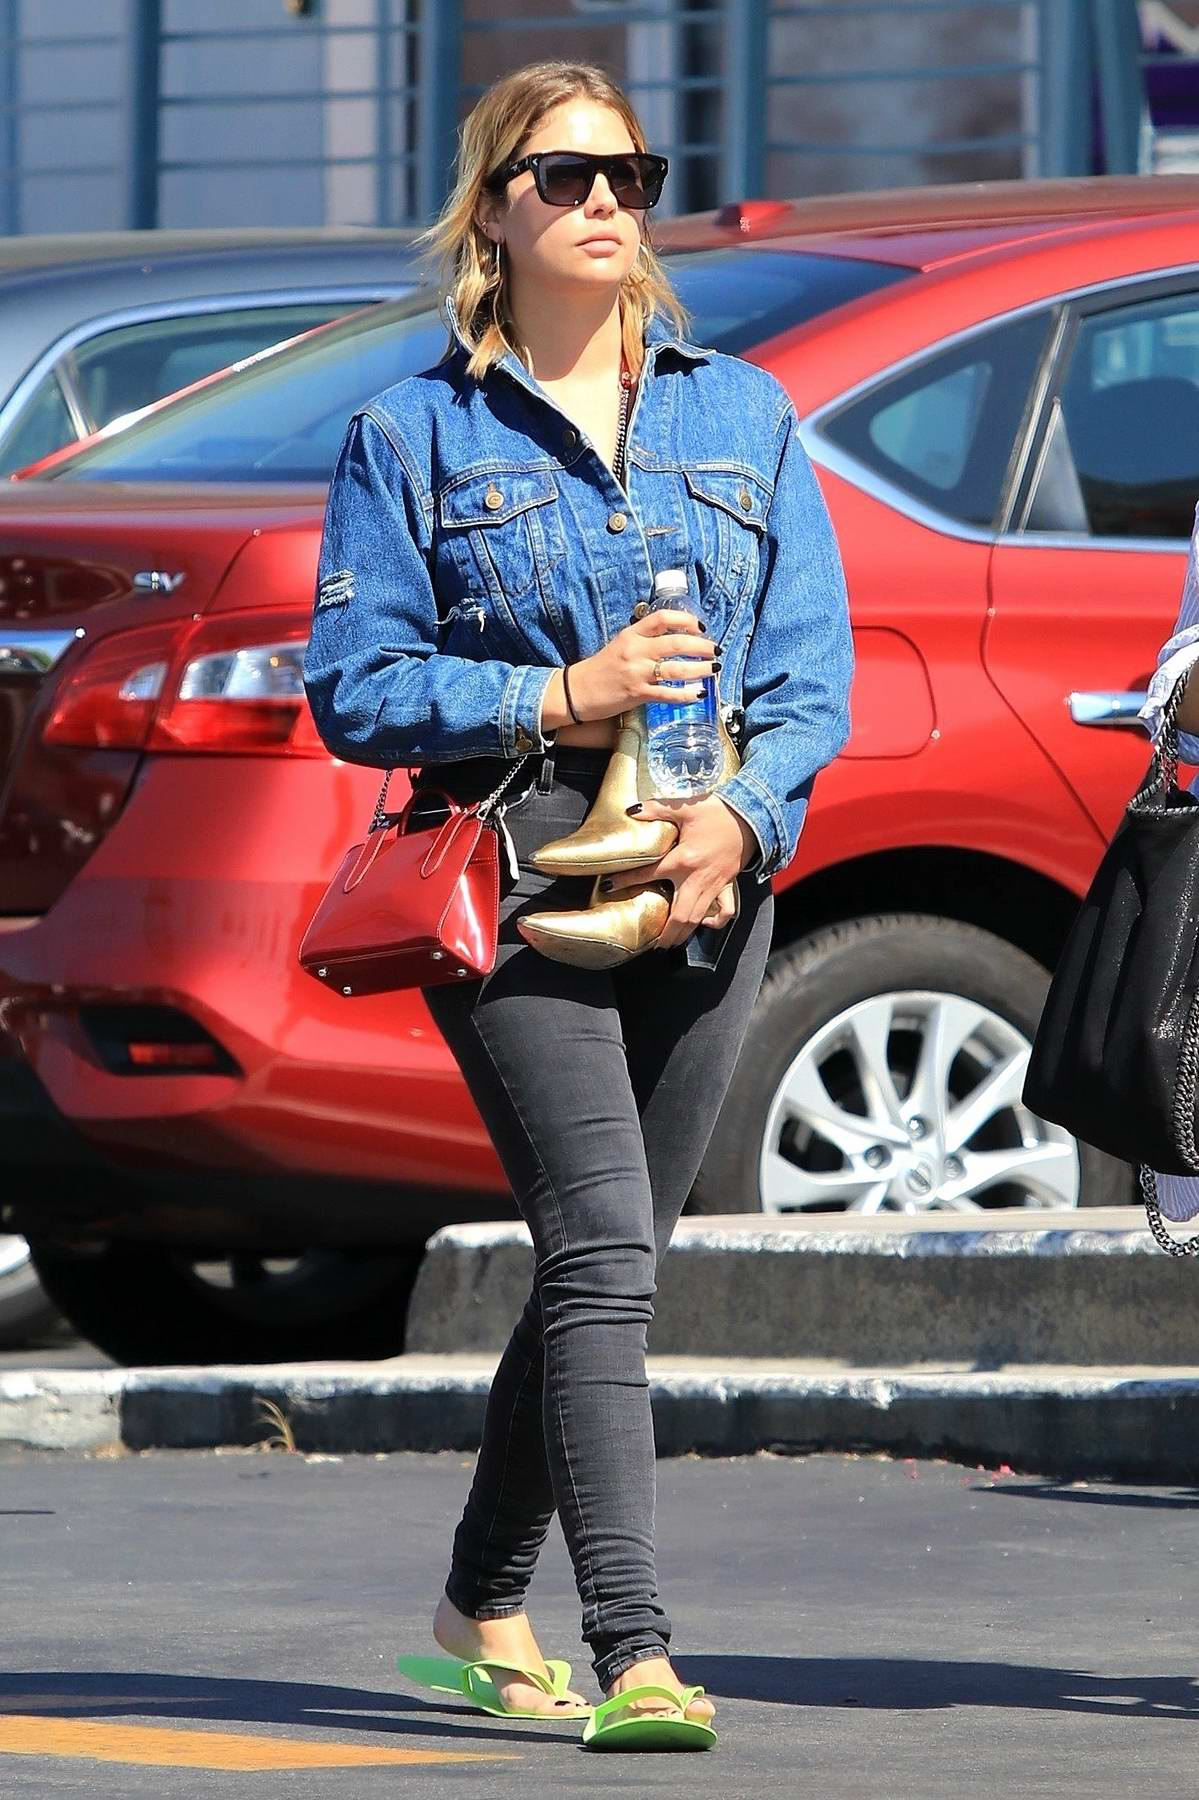 Ashley Benson visits a local Nail Salon with a Friend in Studio City, Los Angeles